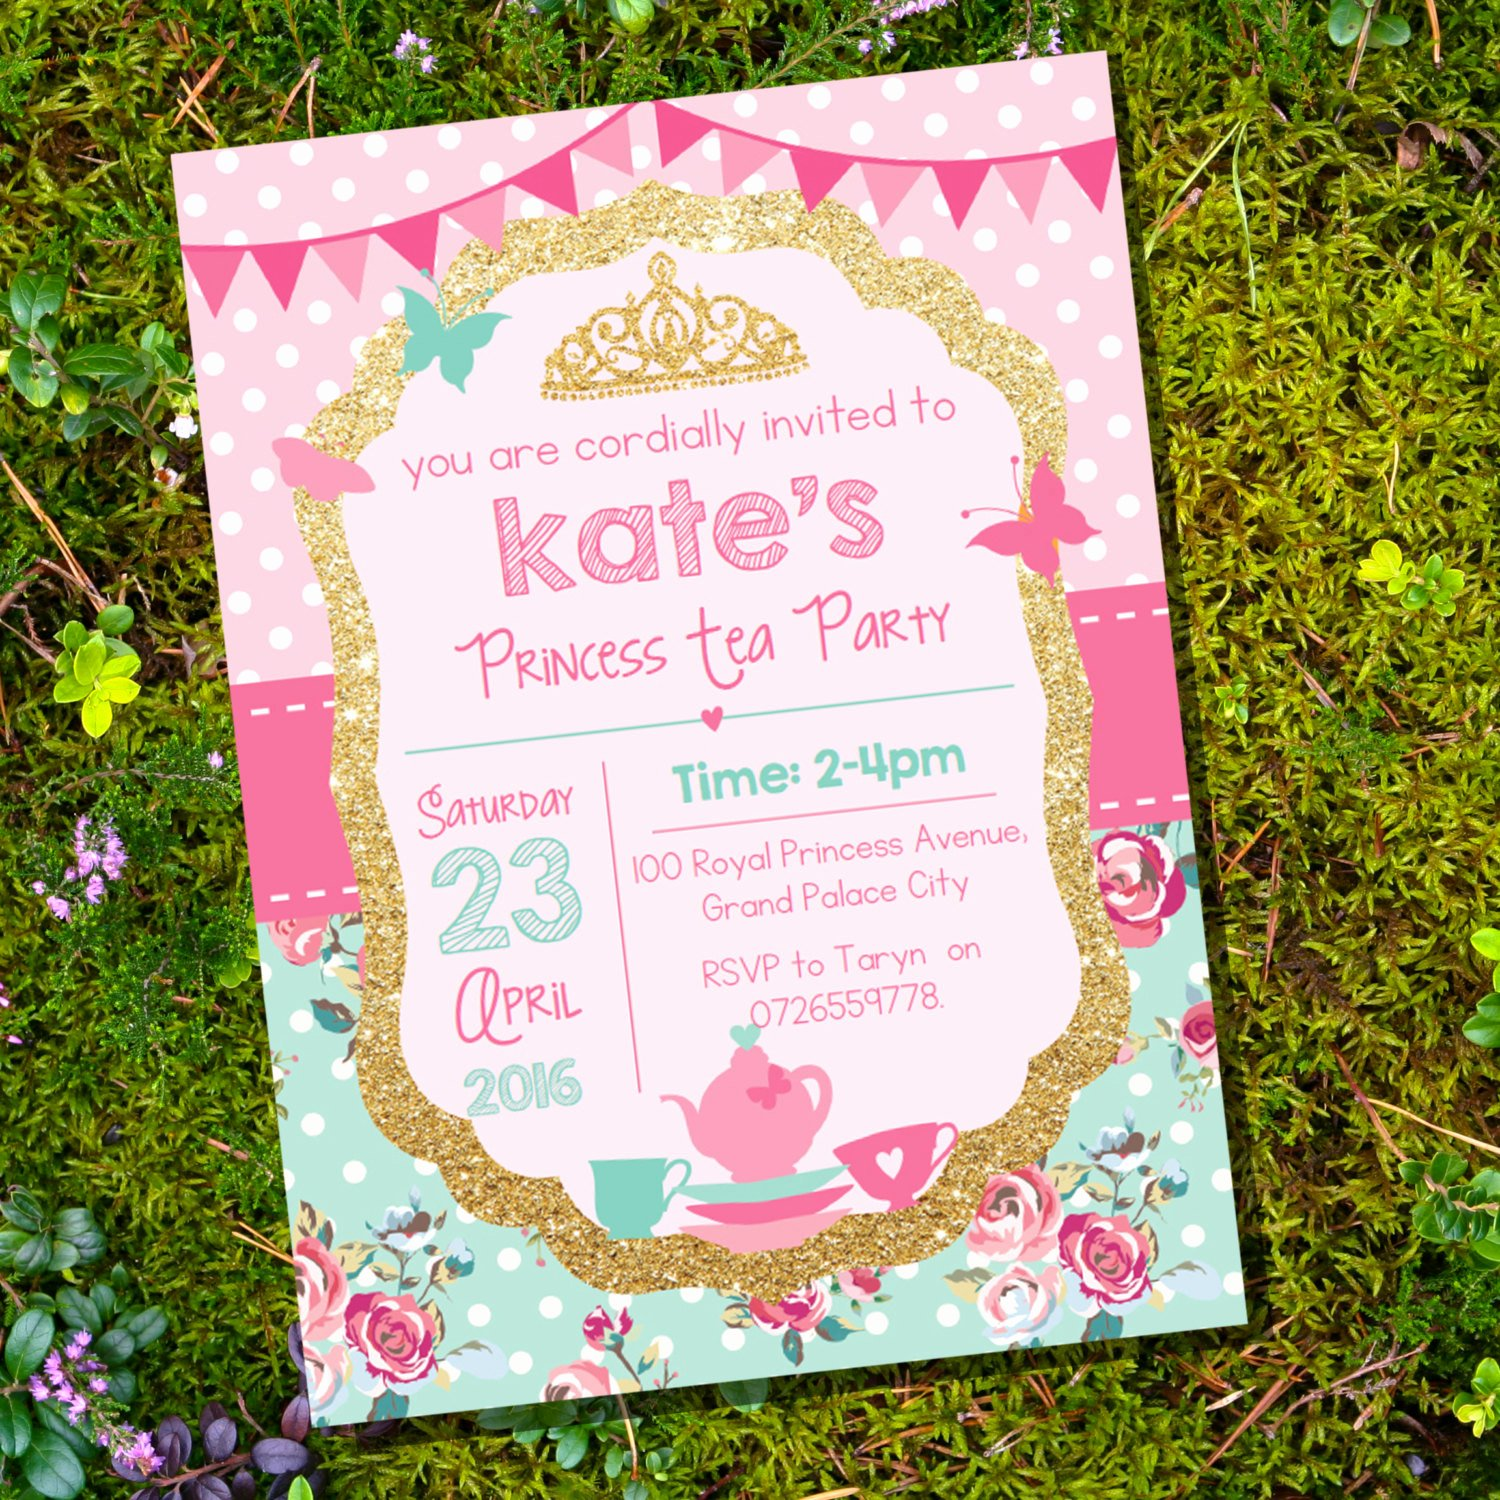 Princess Tea Party Invitations Unique Princess Tea Party Invitation Pink and Gold Glitter Shabby